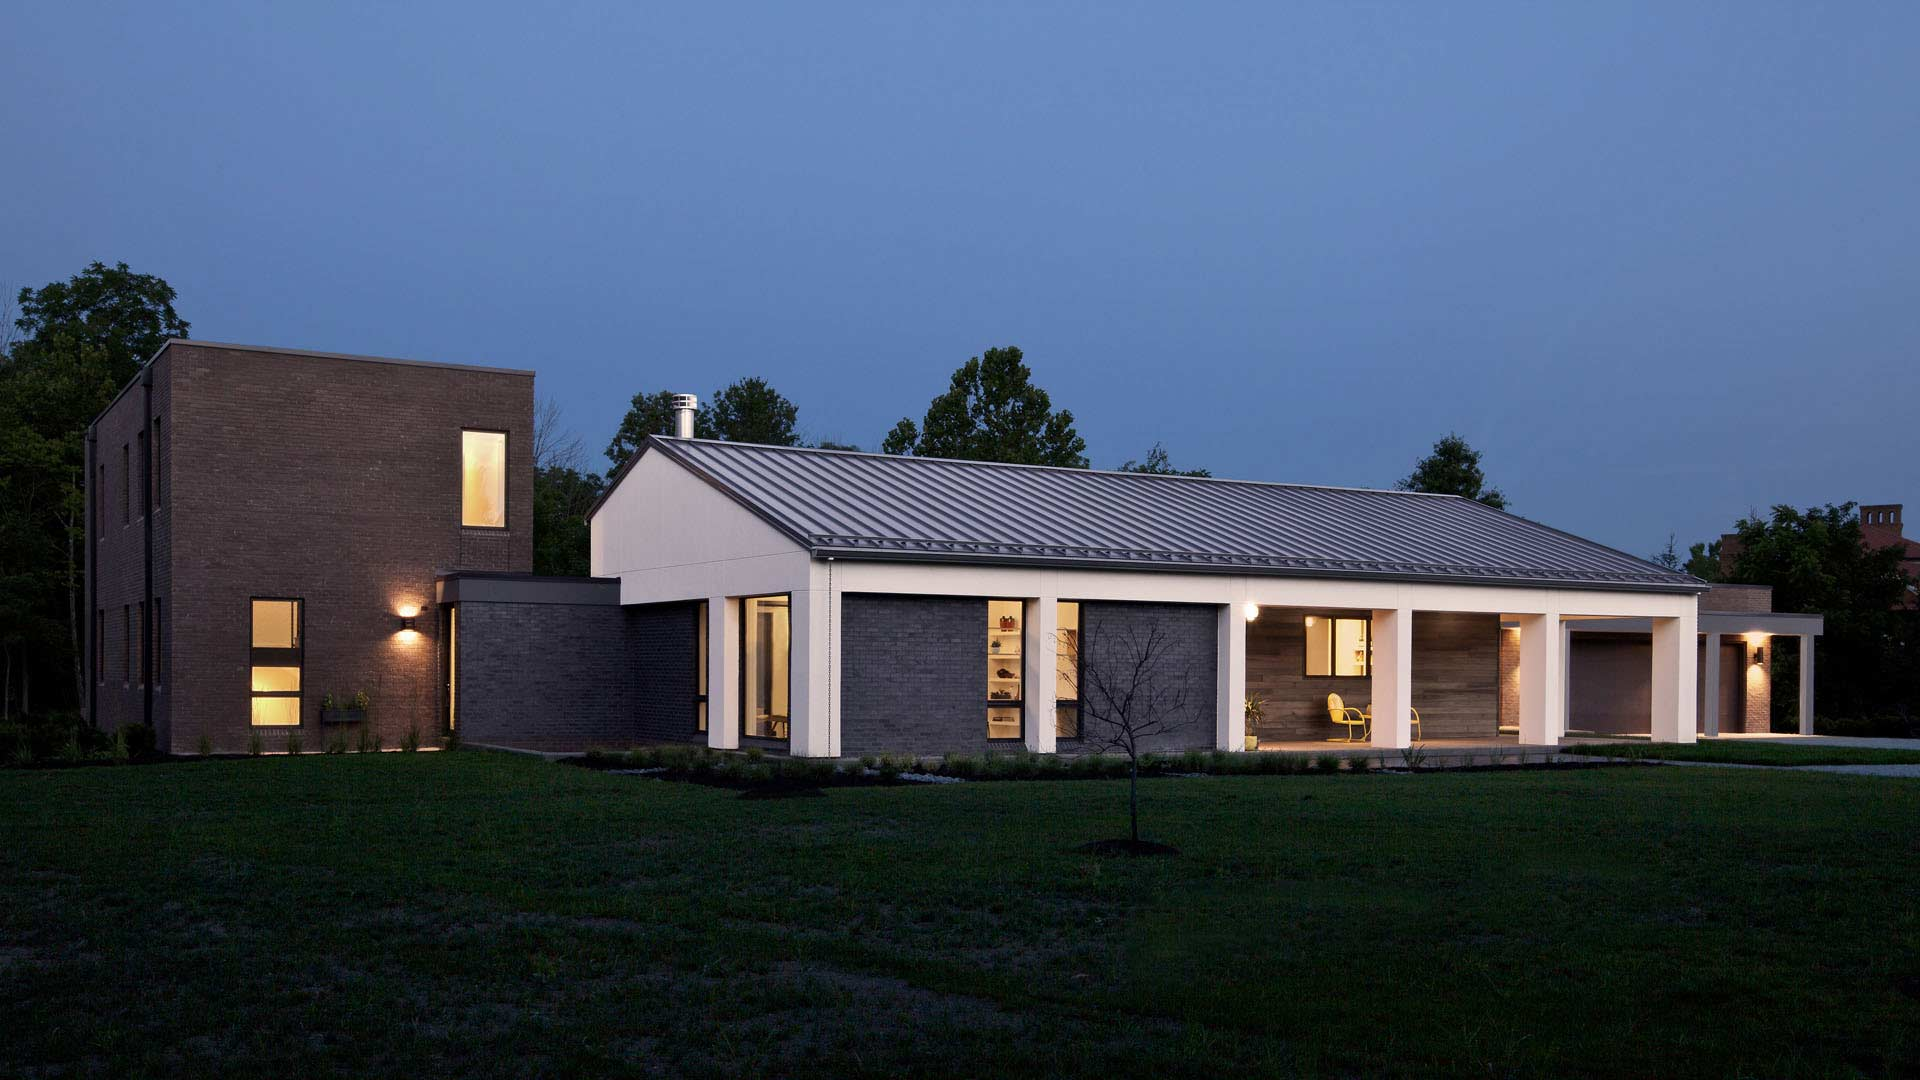 New Modern House Ditch - Front Elevation - Christopher Short, Architect, Indianapolis, HAUS Architecture